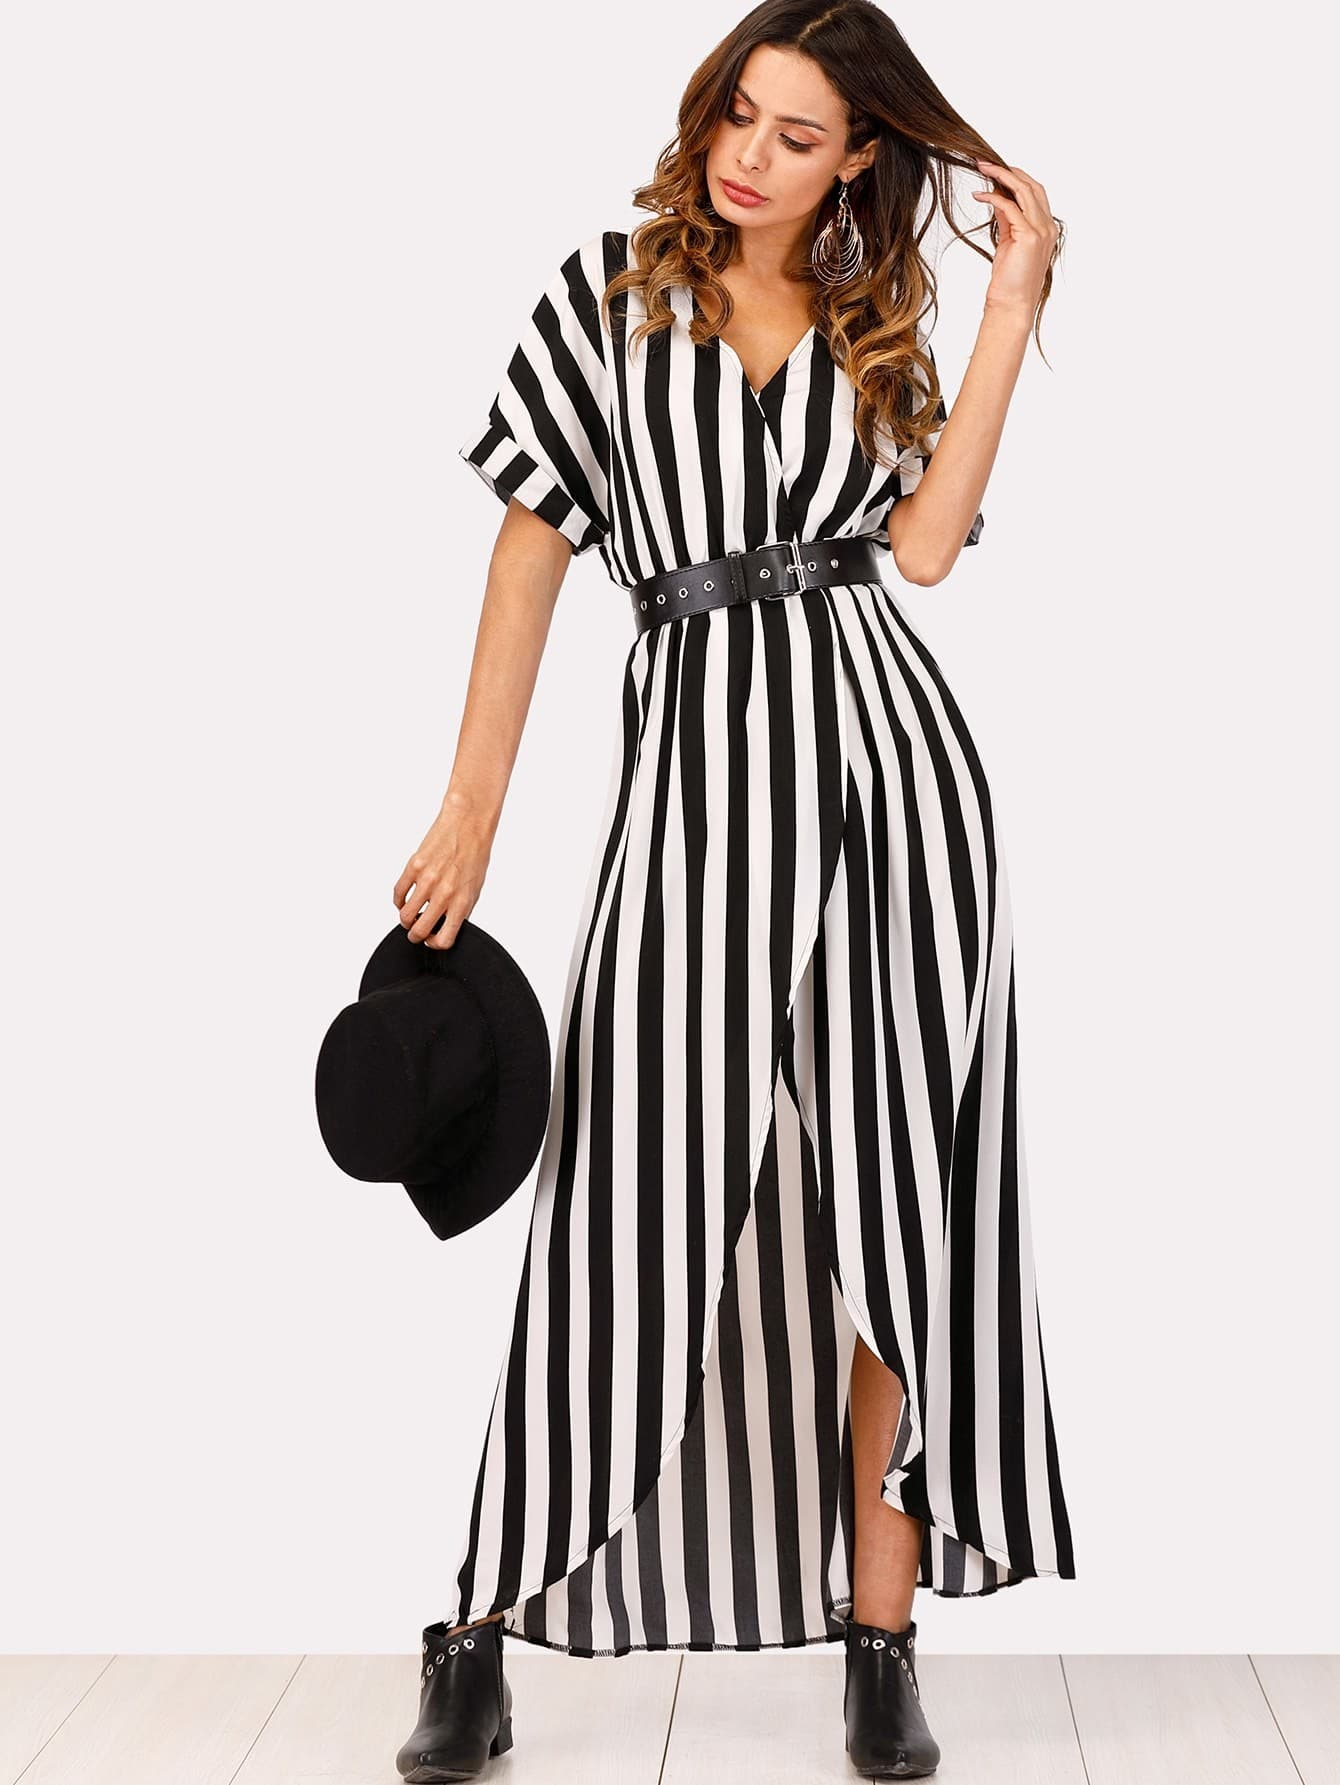 Self Tie Waist Striped Split Front Dress self tie waist batwing sleeve dress